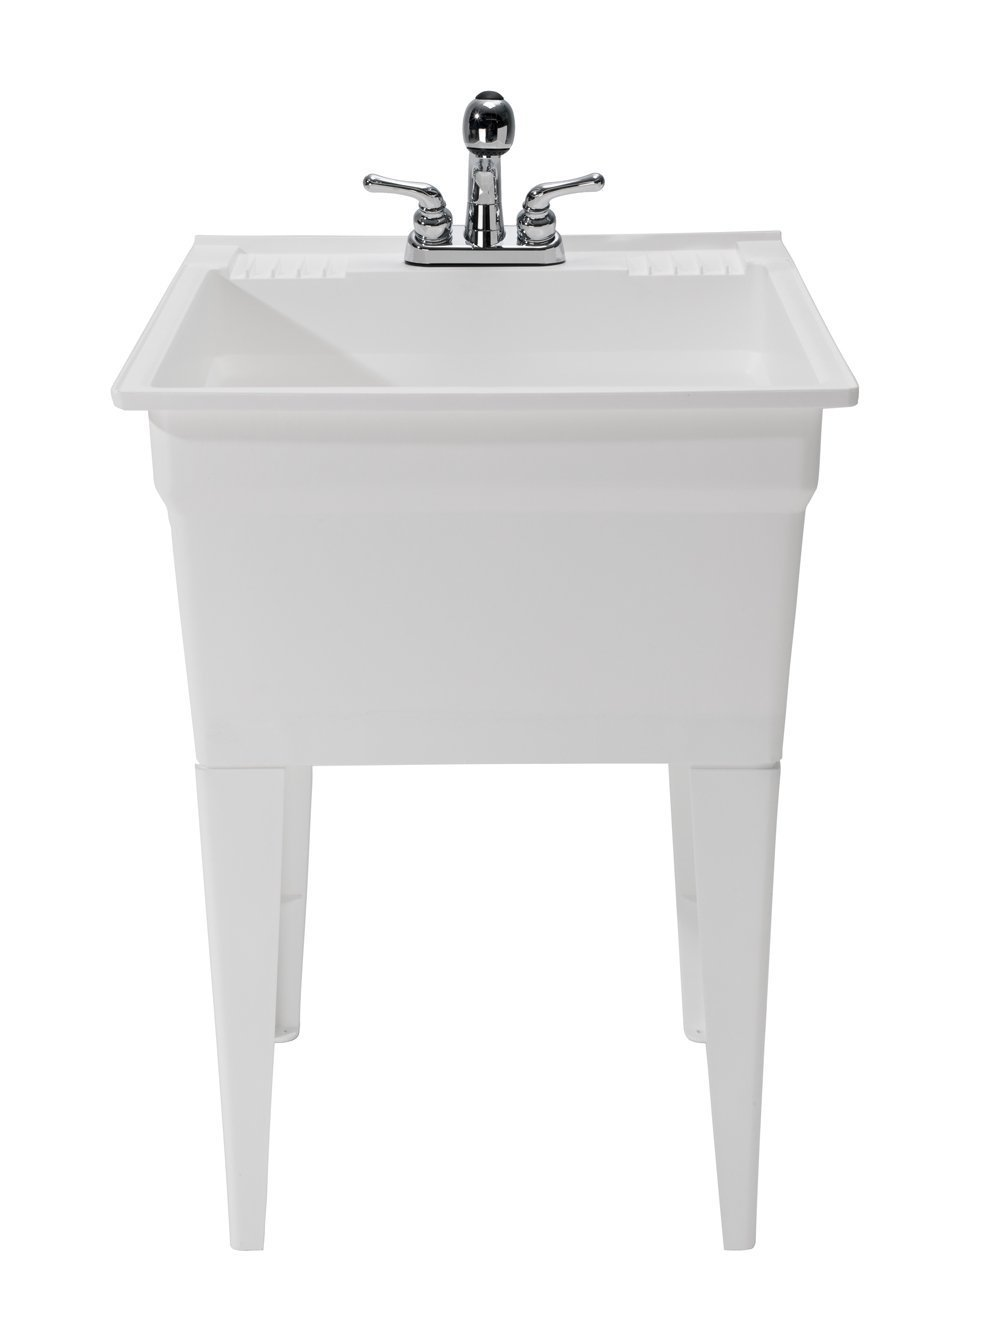 CASHEL Heavy Duty Free-Standing Utility and Laundry Sink - Fully Loaded Sink Kit, 1960-32-01, White